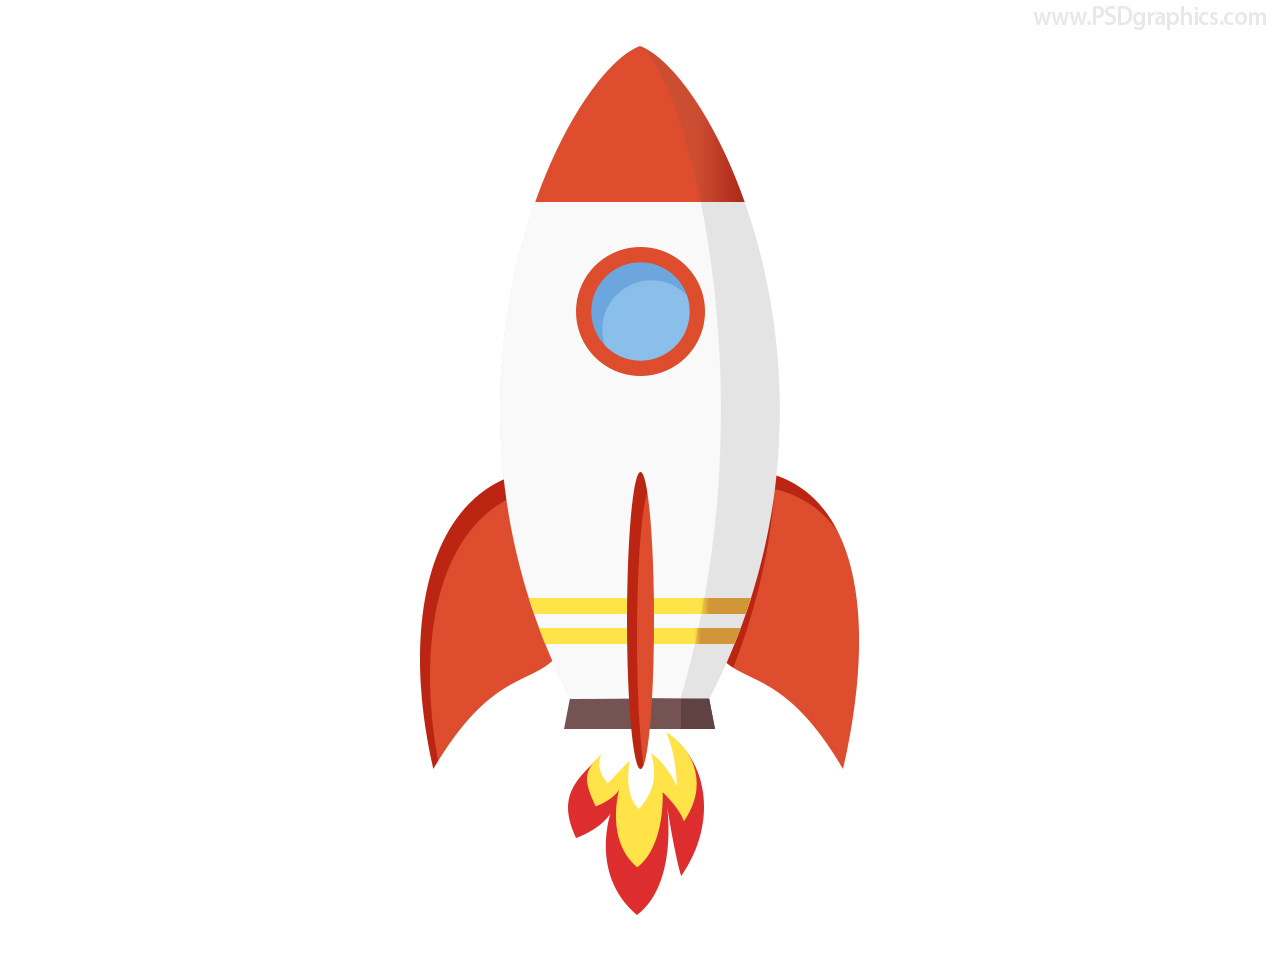 Full size JPG preview: Rocket icon